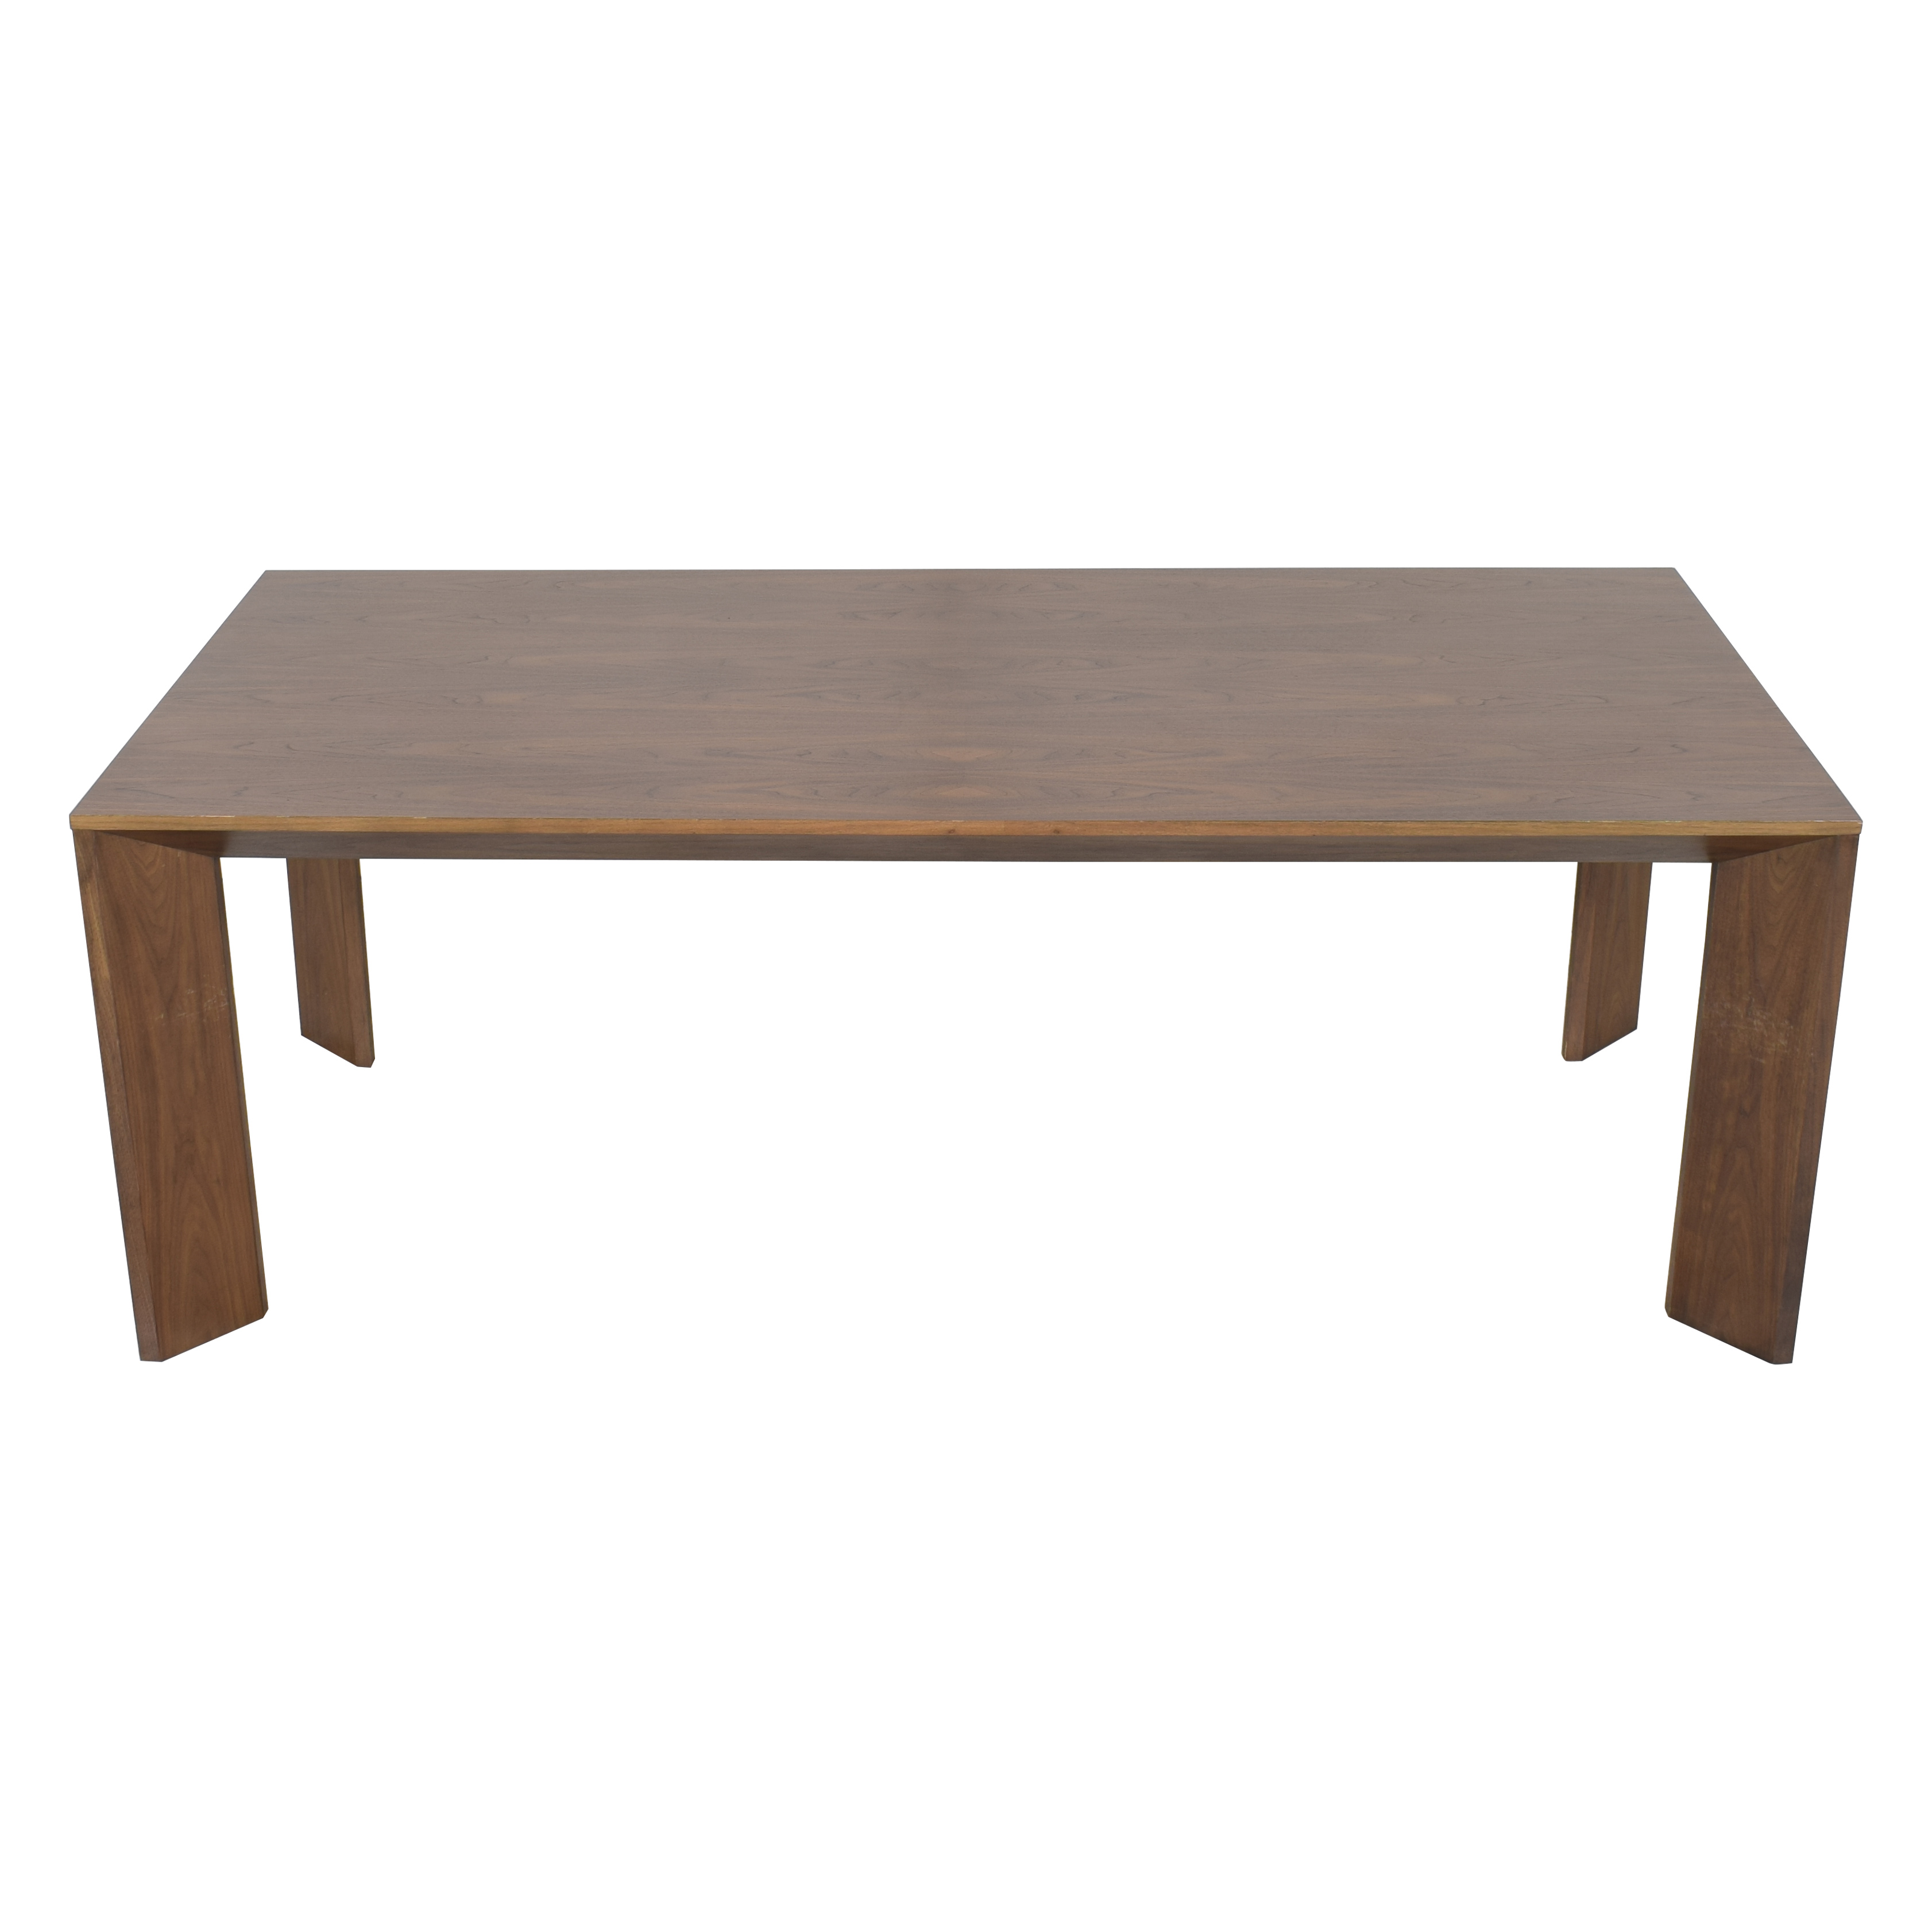 Restoration Hardware Restoration Hardware Arles Dining Table nyc